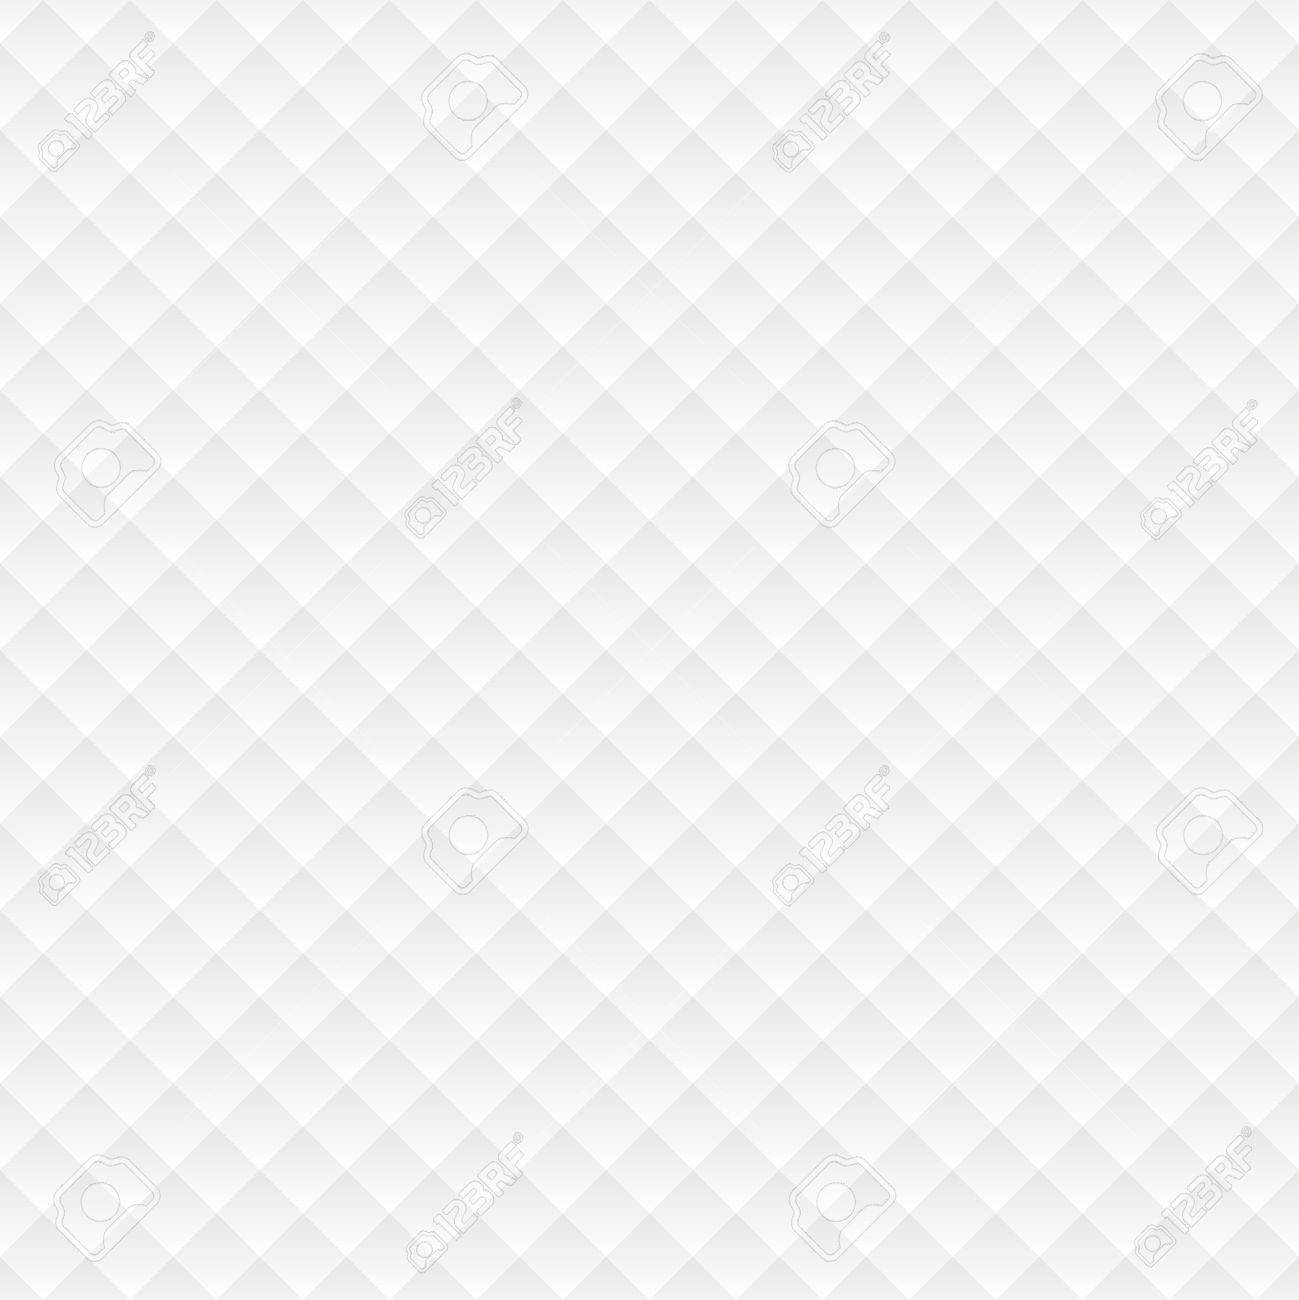 Rhombus Seamless White Background Simple Pattern For Web